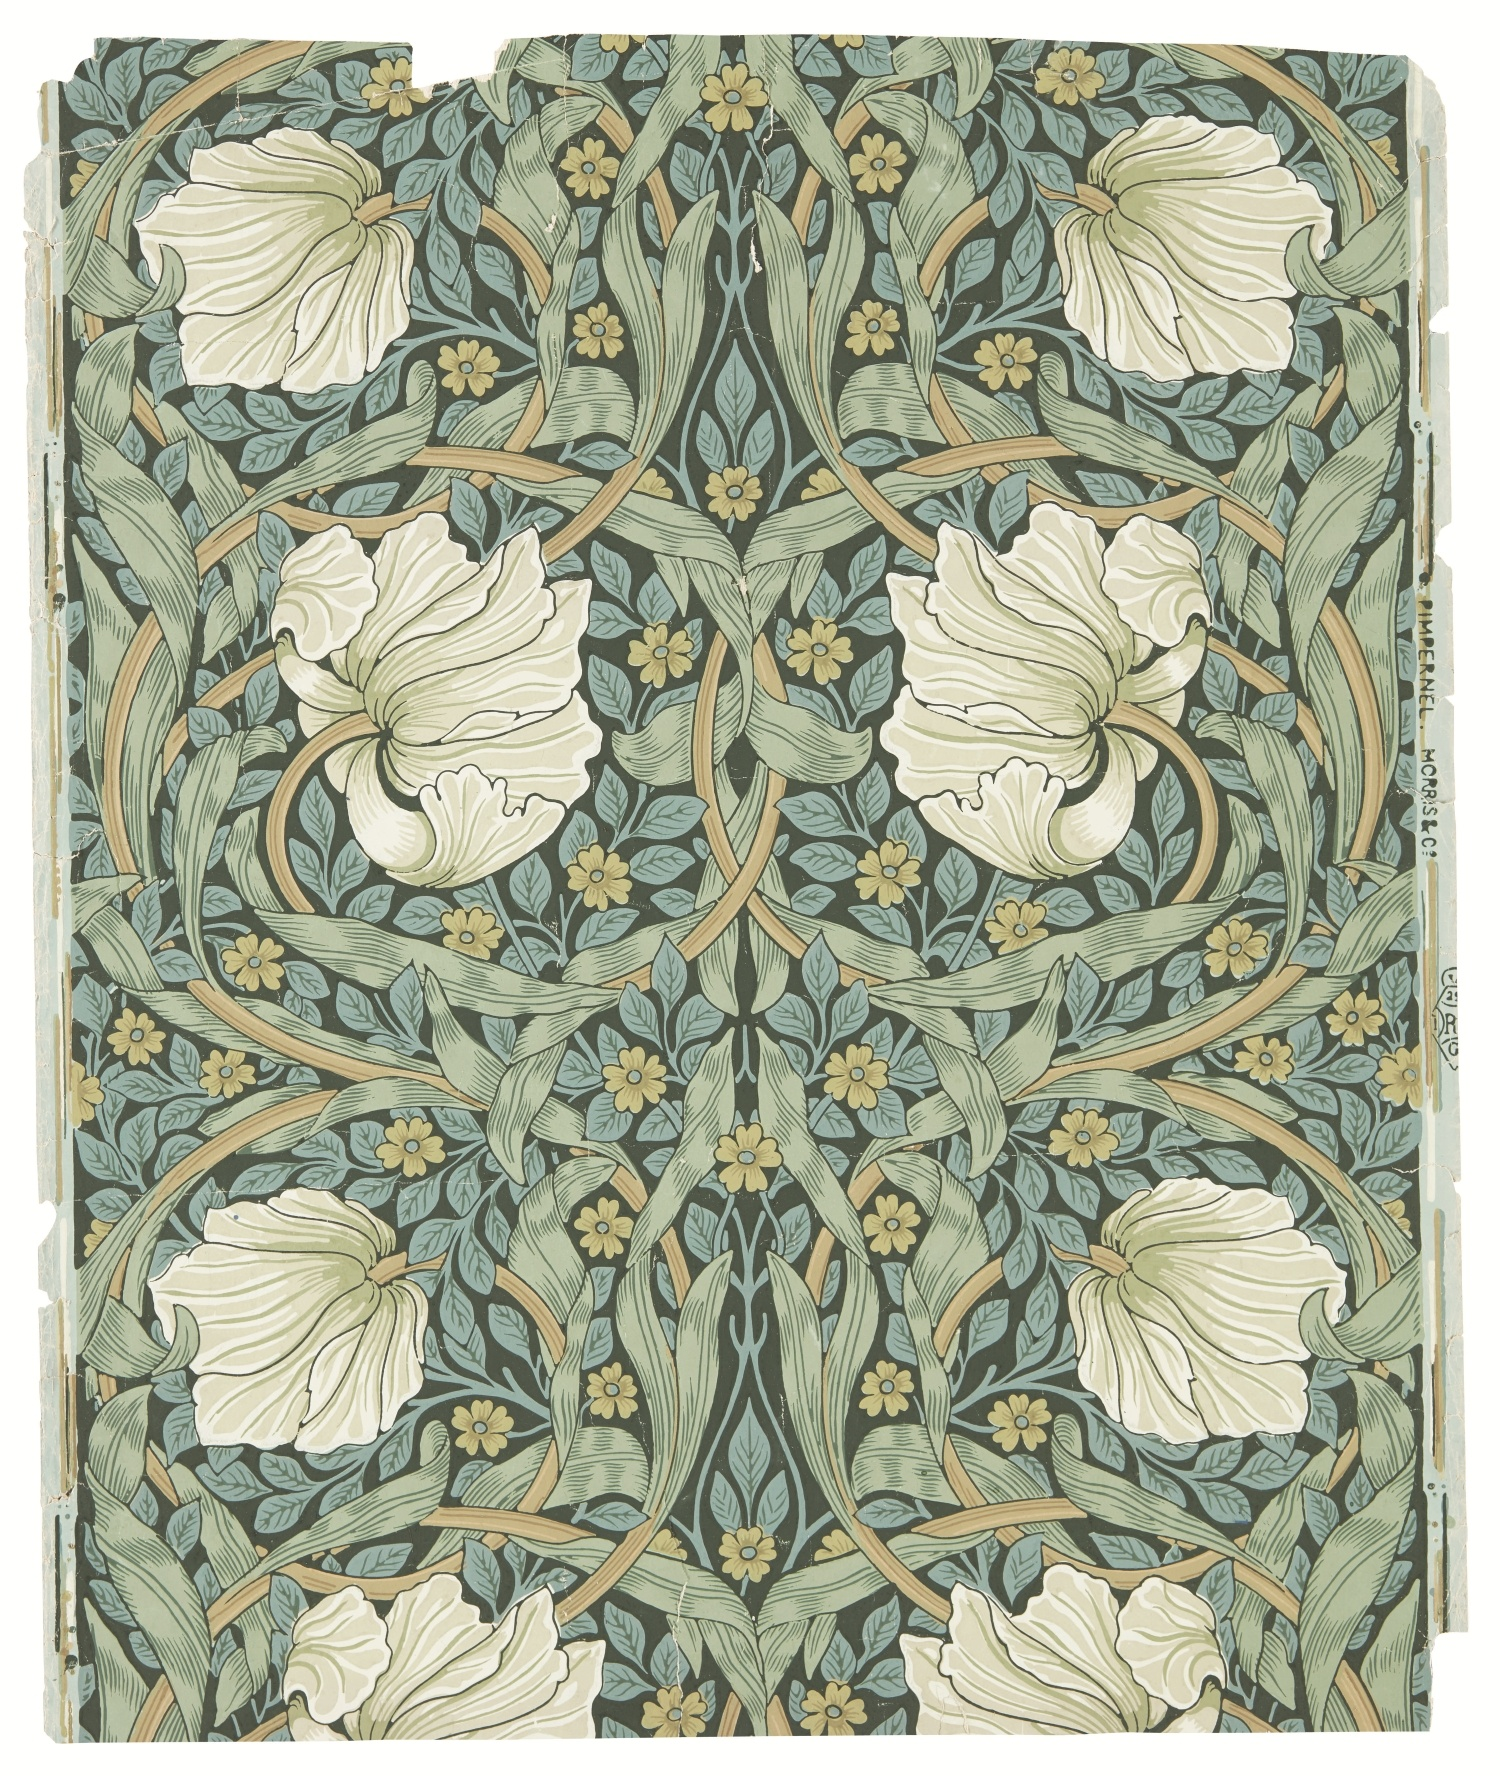 William Morris, Jeffrey & Co., Morris & Co. Paper pintat Pimpernel (Pimpinella), cap a 1876 © Morris & Co.